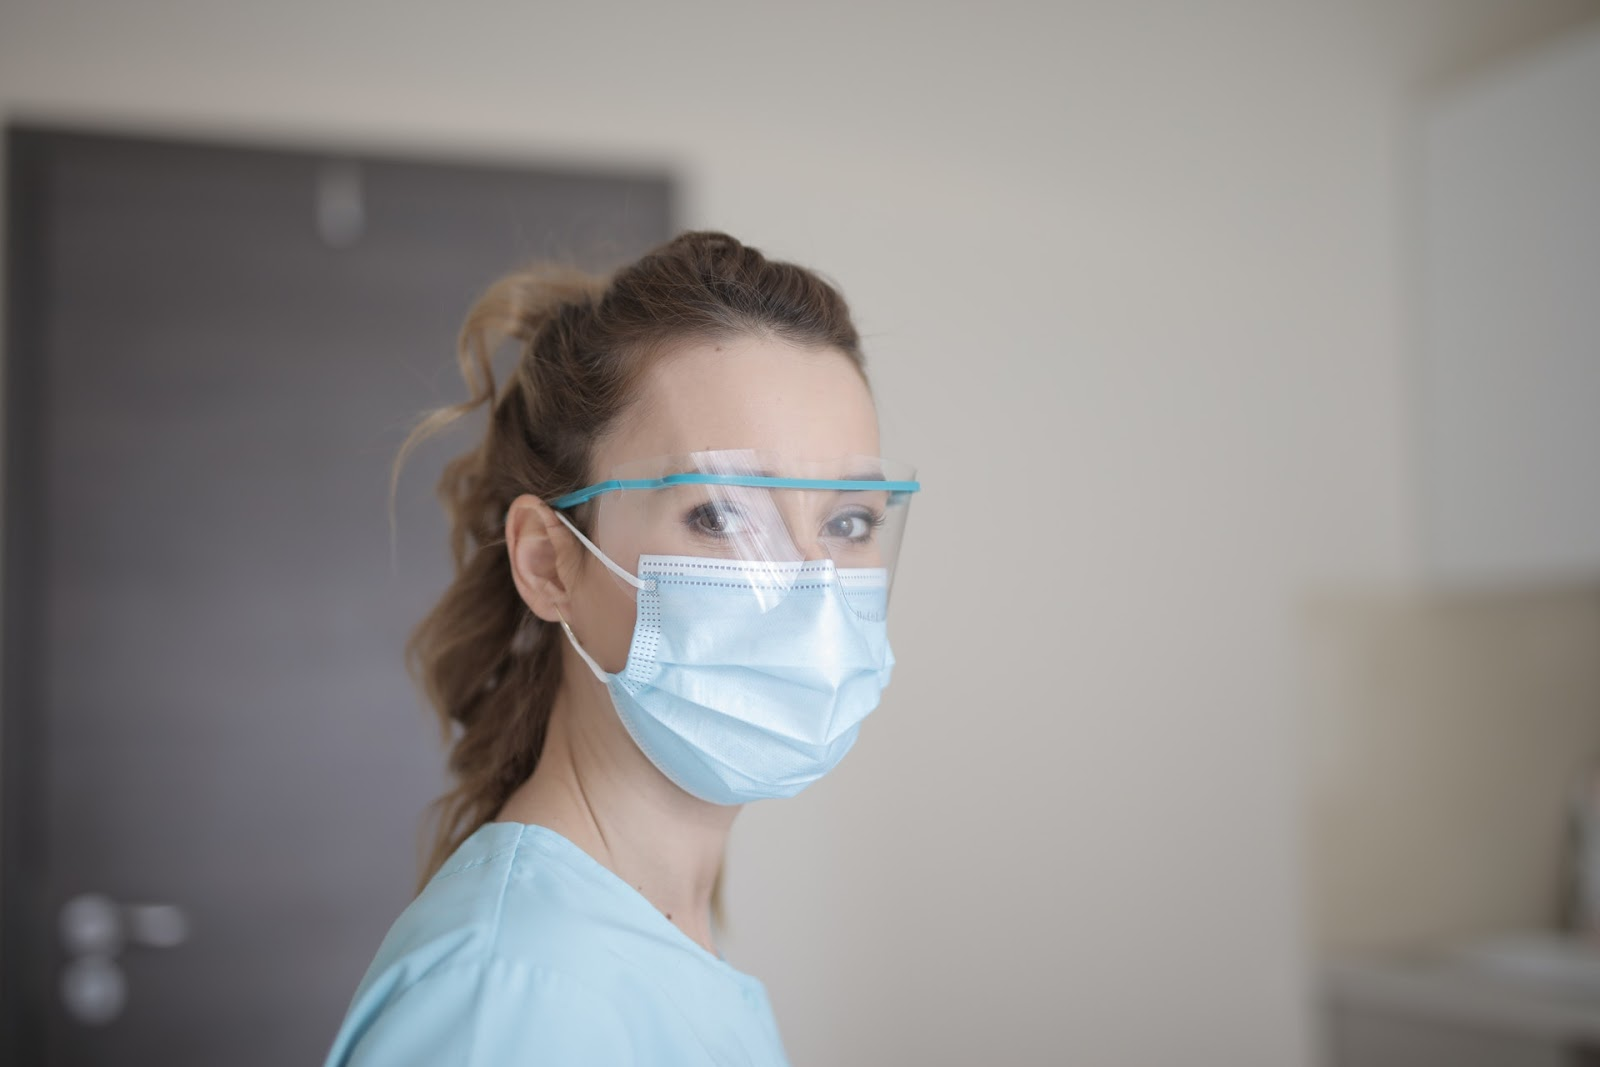 A healthcare worker wears a face shield and surgical mask, which are considered to be proper PPE for protection against COVID-19.